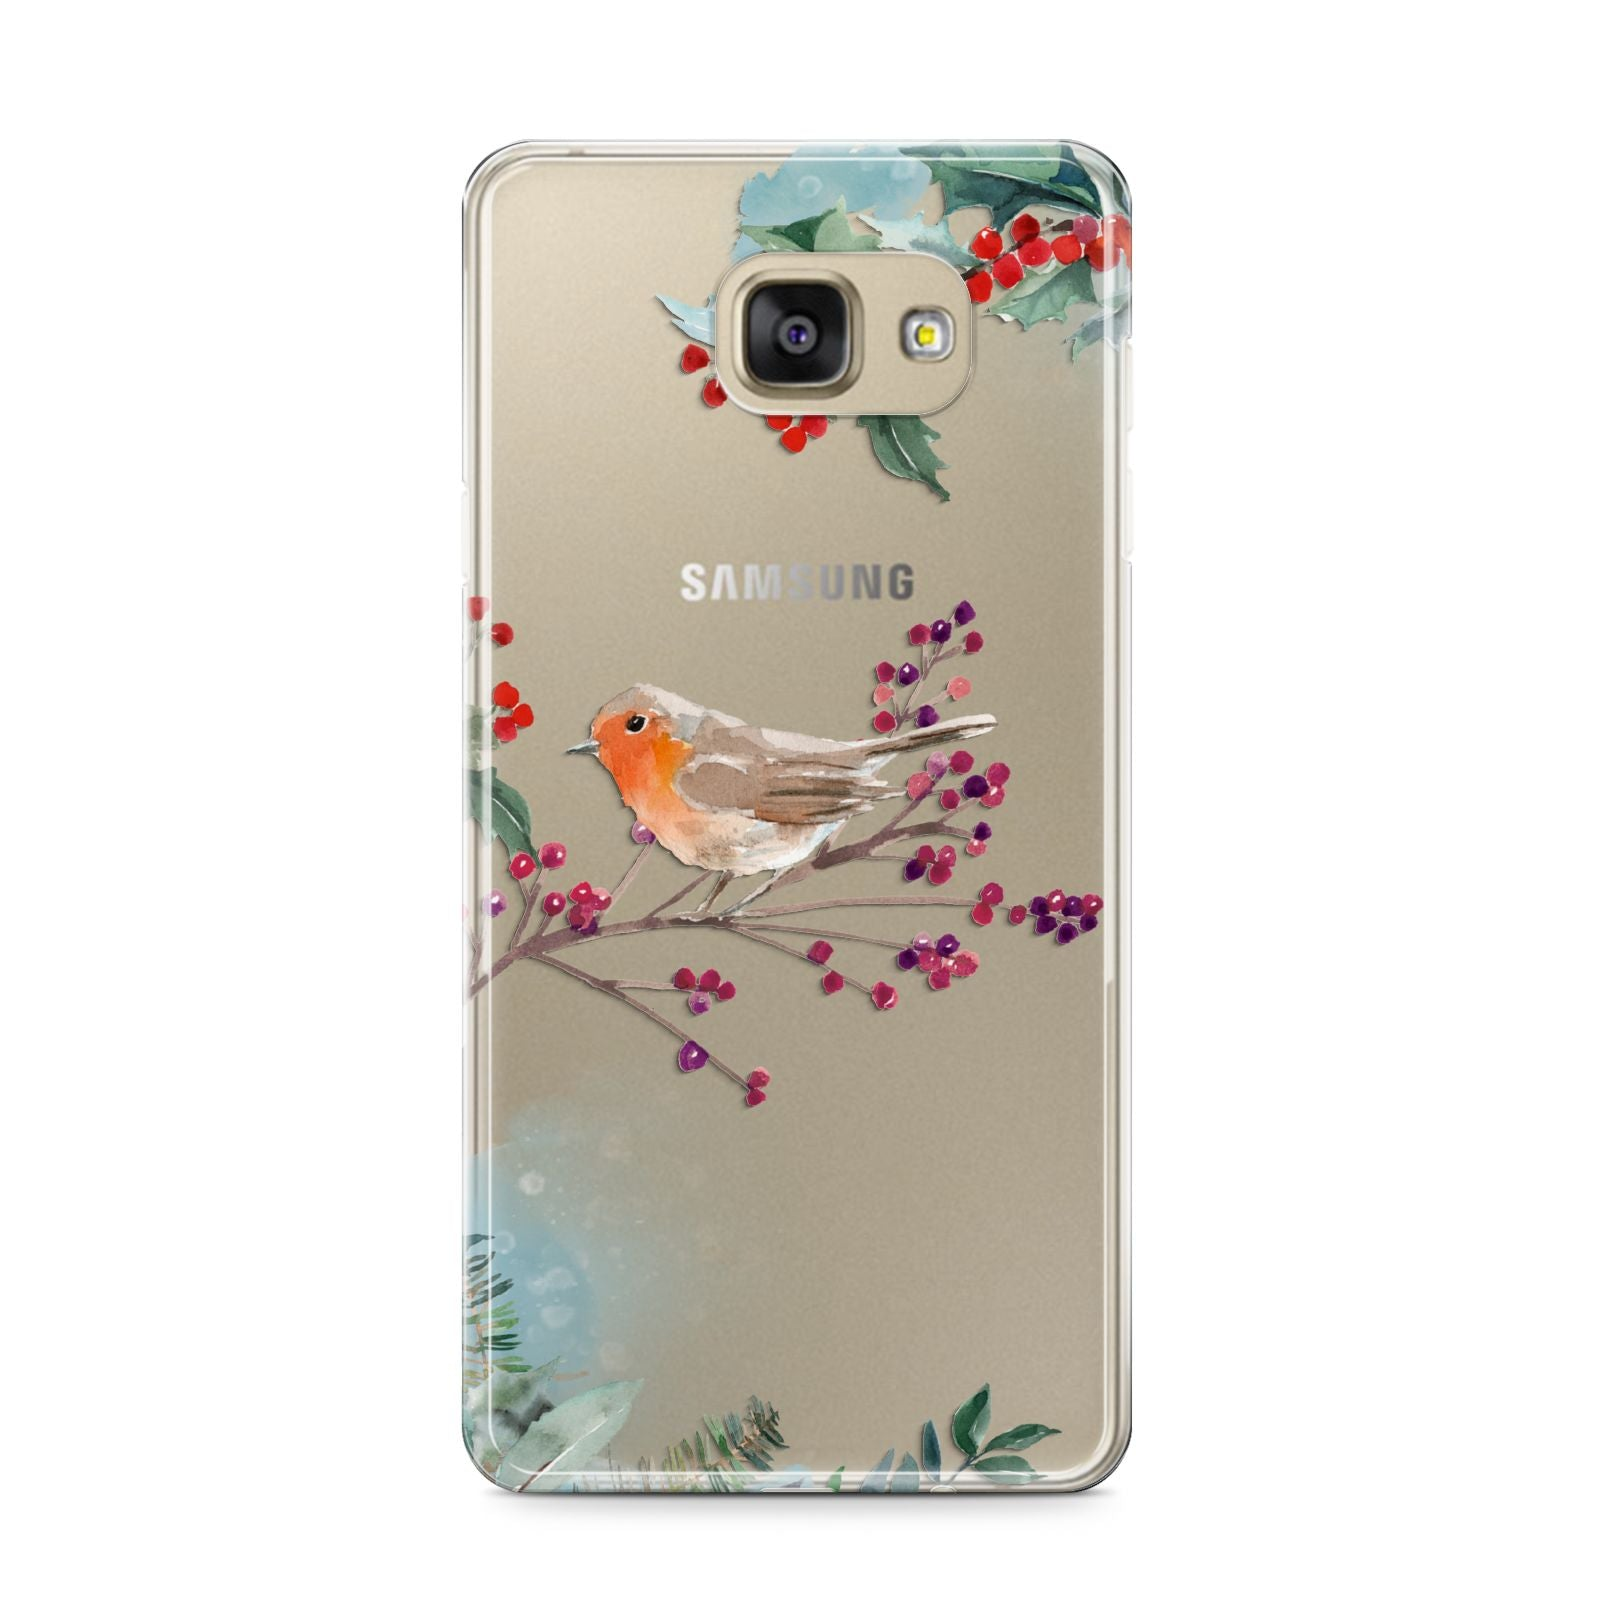 Christmas Robin Floral Samsung Galaxy A9 2016 Case on gold phone